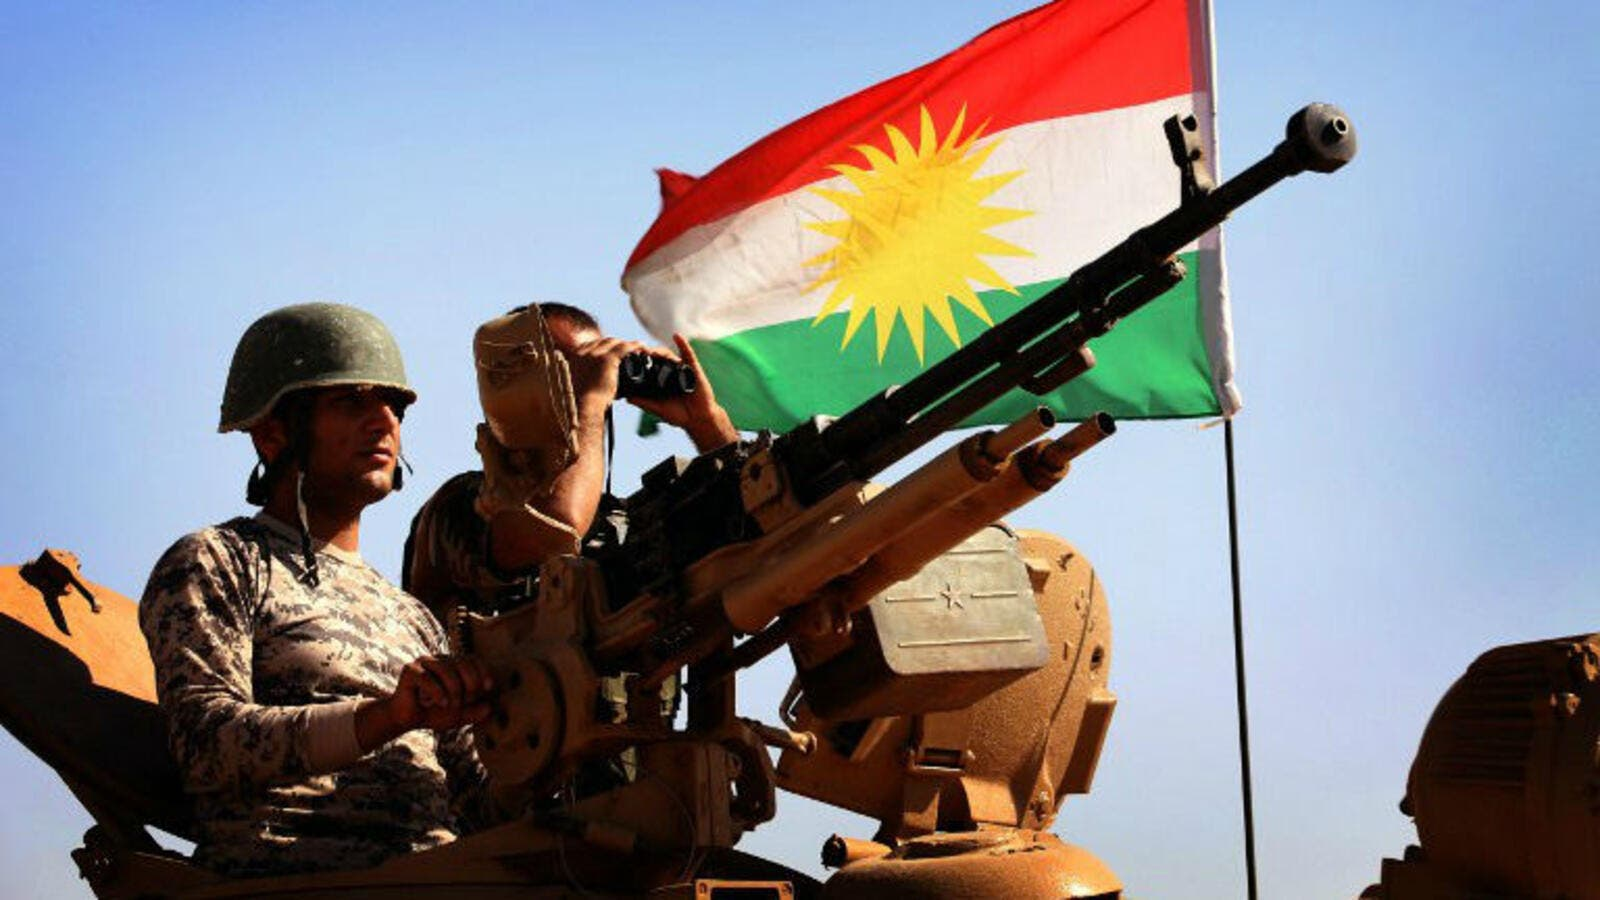 As Russian airstrikes intensify in Syria, more Western powers are showing renewed interest in Kurdish groups fighting Daesh in Iraq and Syria. (AFP/File)